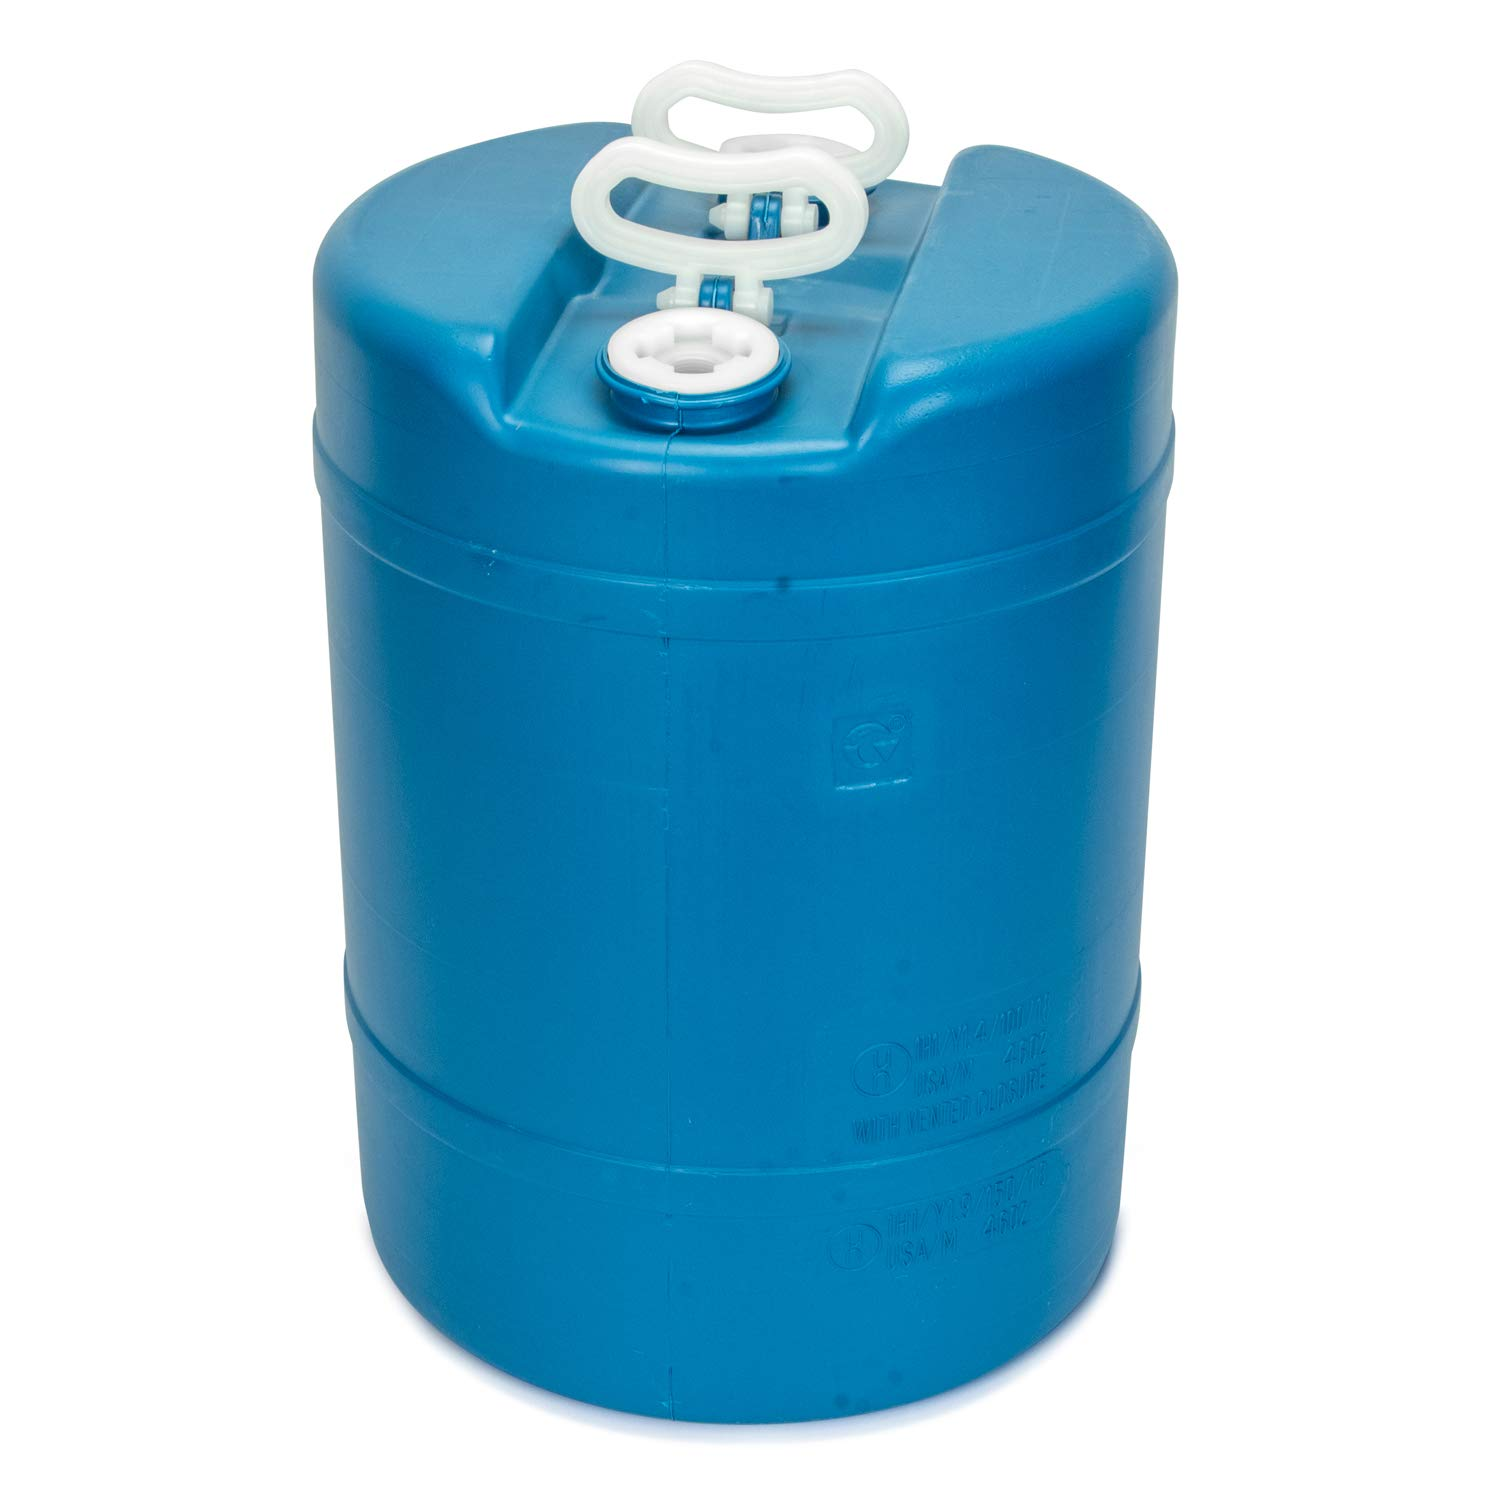 15 Gallon Emergency Water Storage Barrel - 1 Tank - Preparedness Supply - Water Tank Drum Container - Portable, Reusable, BPA Free, Food Grade Plastic by Legacy Premium Food Storage